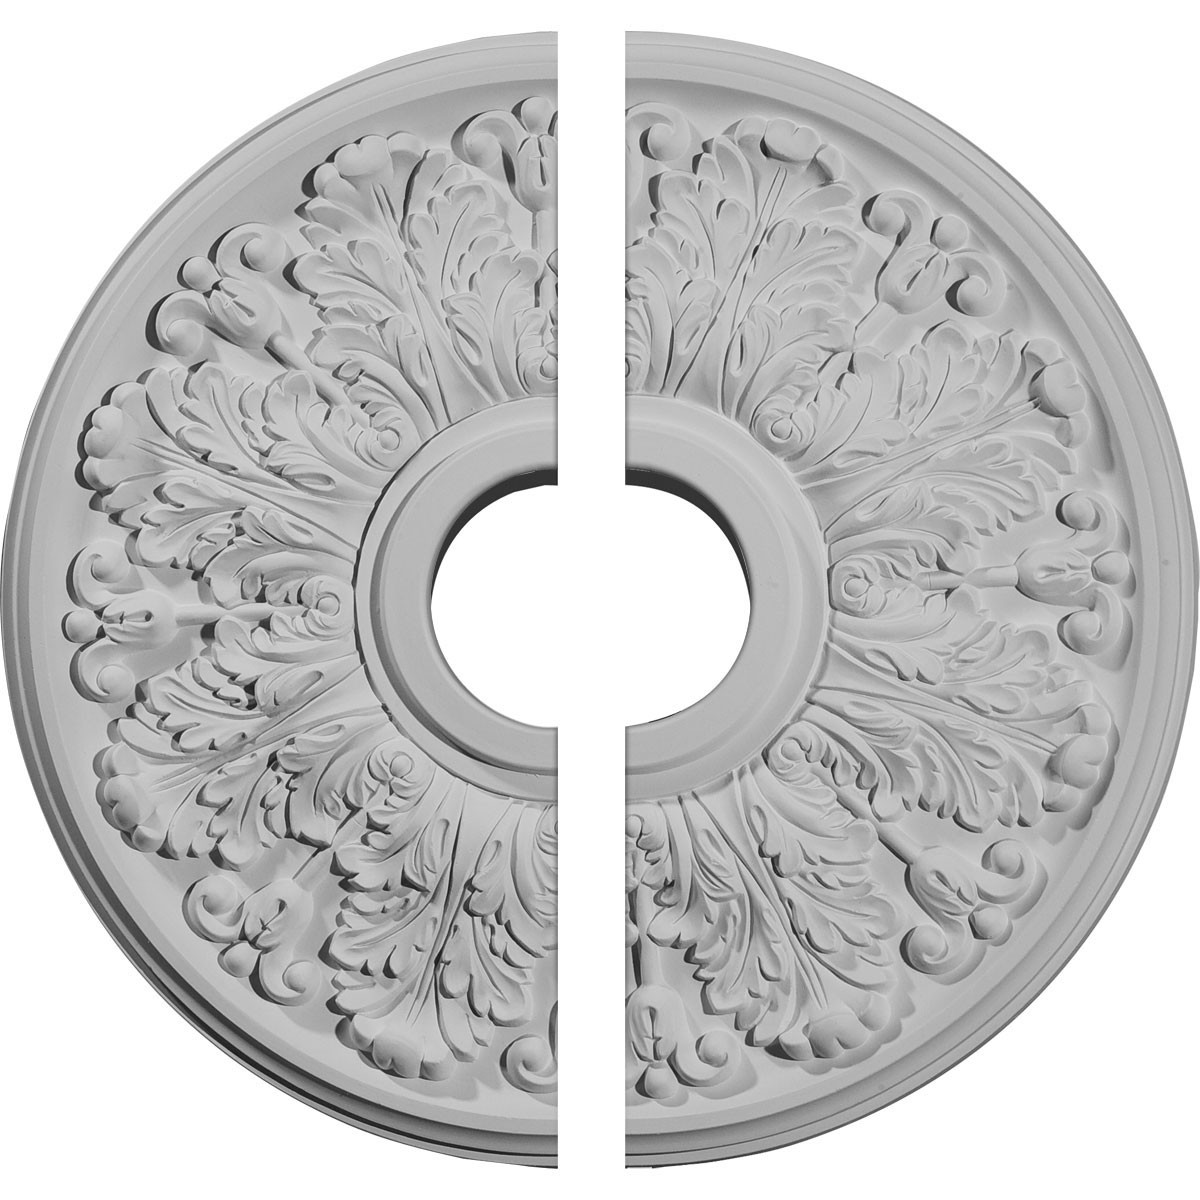 """EM-CM16AP2 - 16 1/2""""OD x 3 5/8""""ID x 1 1/8""""P Apollo Ceiling Medallion, Two Piece (Fits Canopies up to 5 5/8"""")"""